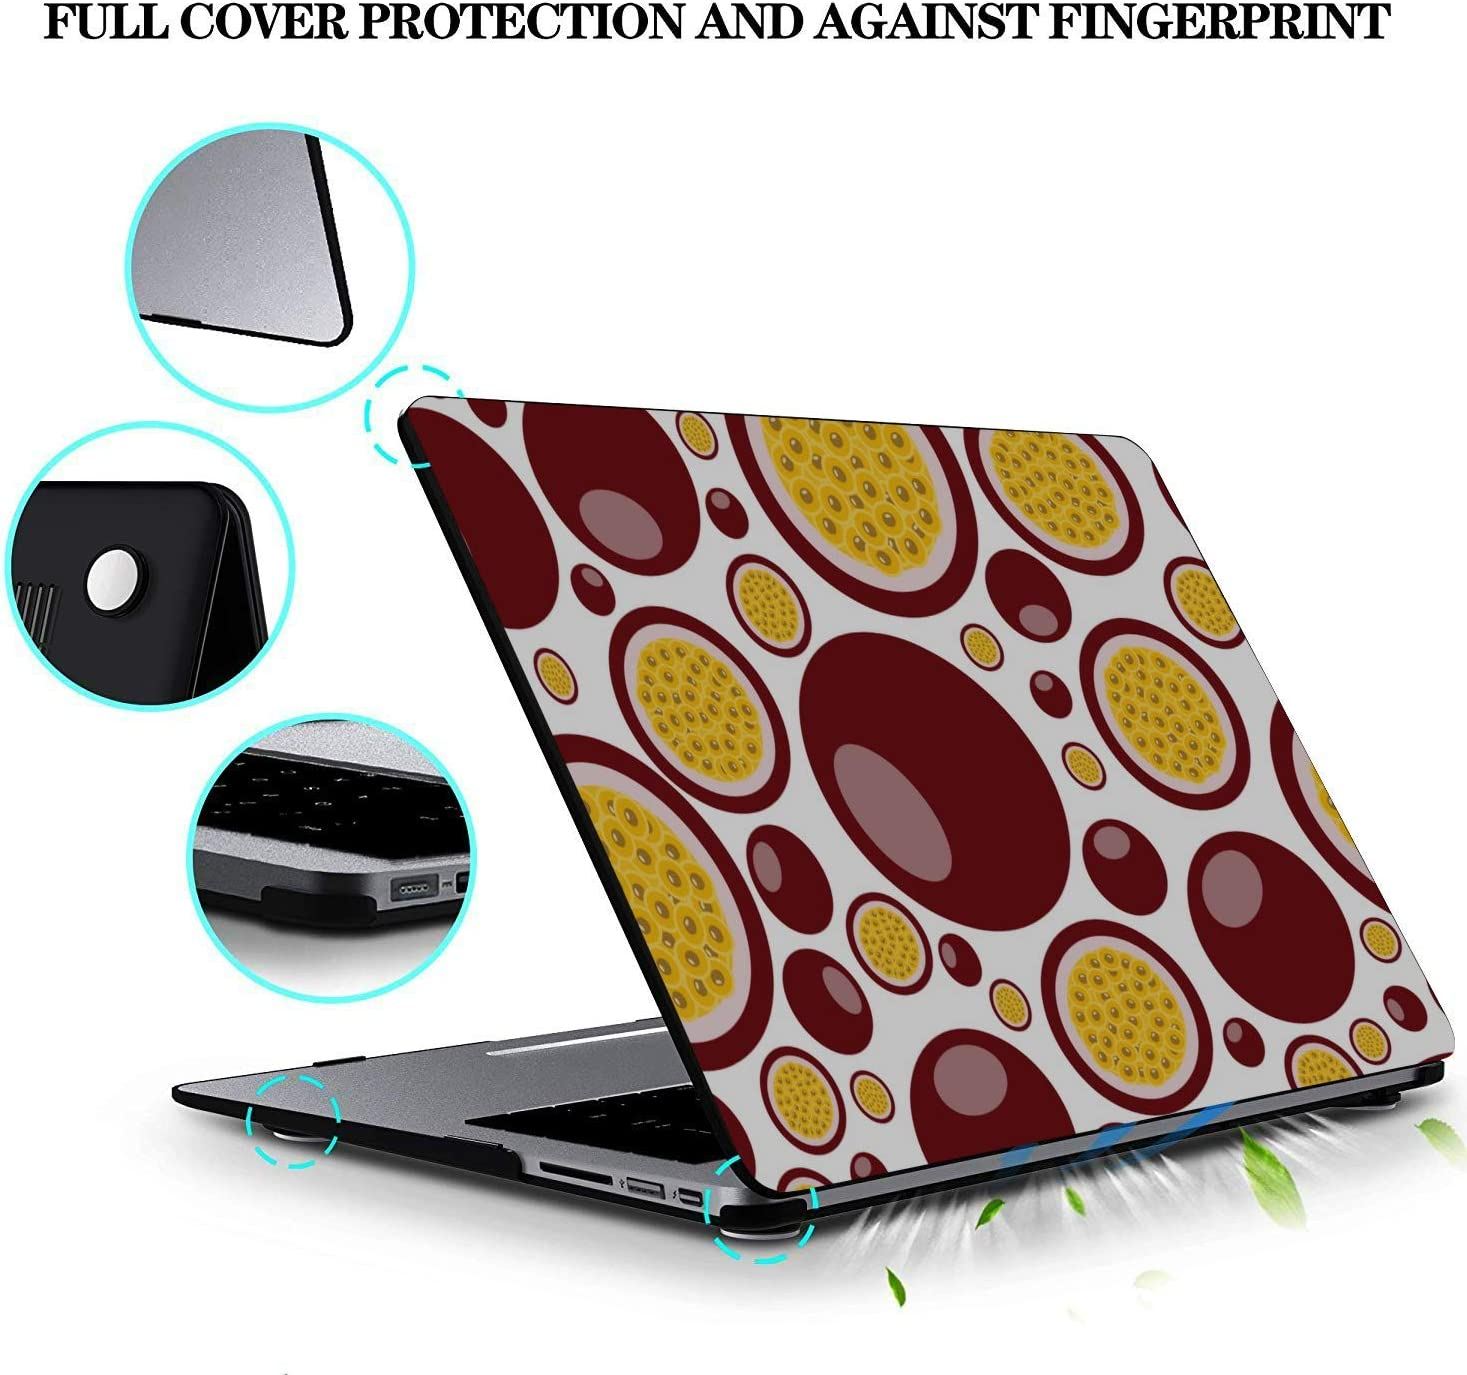 MacBook Pro Laptop Cover Summer Sweet Sour Passion Fruit Drink Plastic Hard Shell Compatible Mac Air 11 Pro 13 15 Laptop Case Mac Protection for MacBook 2016-2019 Version